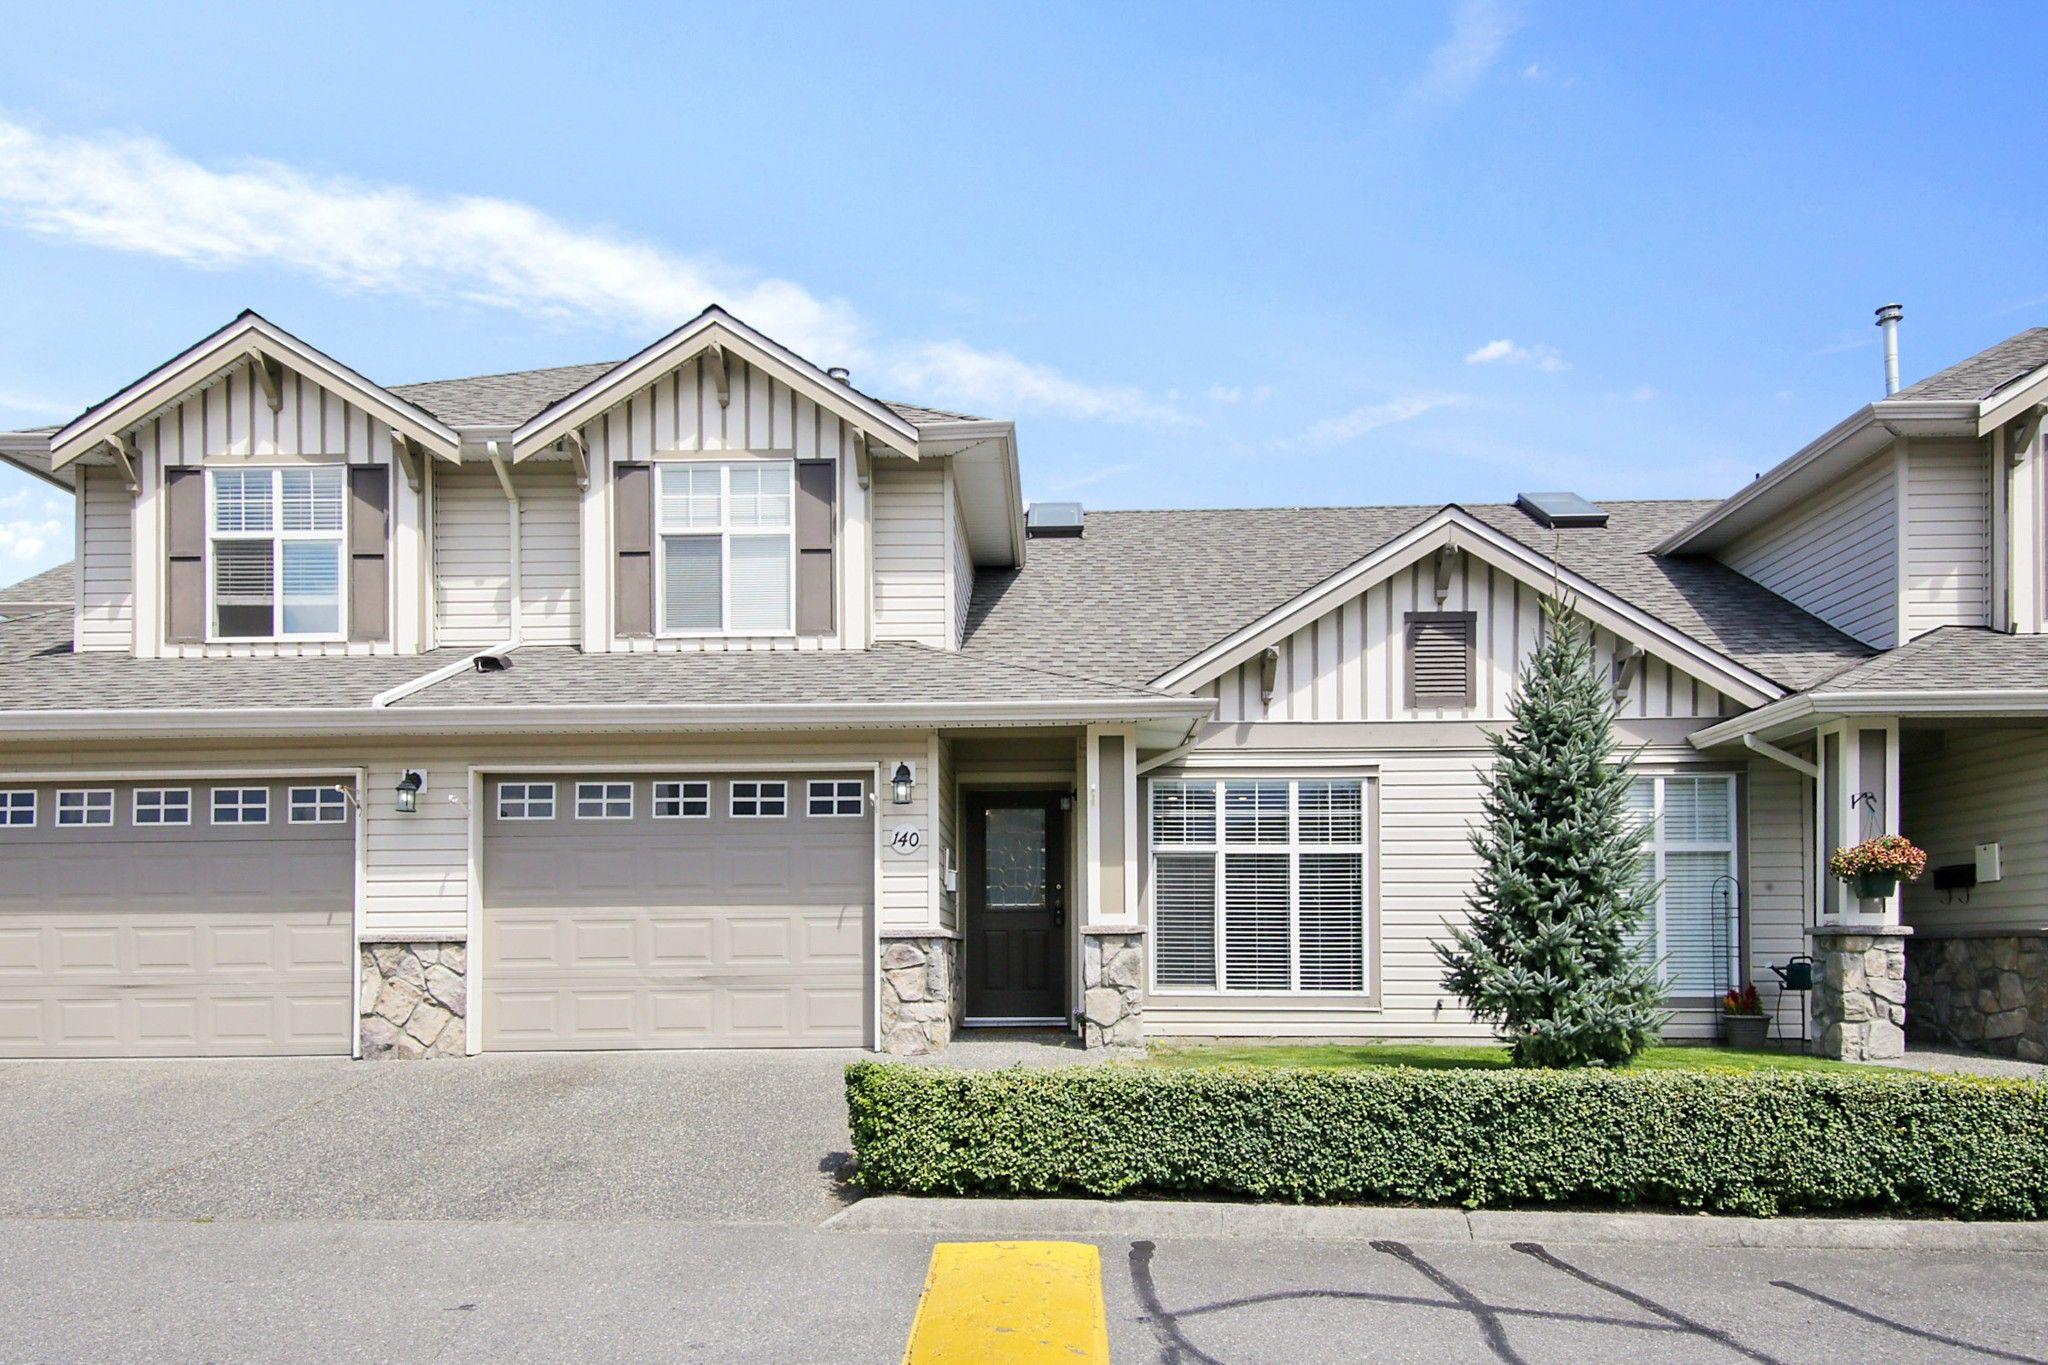 """Main Photo: 140 6450 VEDDER Road in Chilliwack: Sardis East Vedder Rd Townhouse for sale in """"Country Grove"""" (Sardis)  : MLS®# R2604059"""